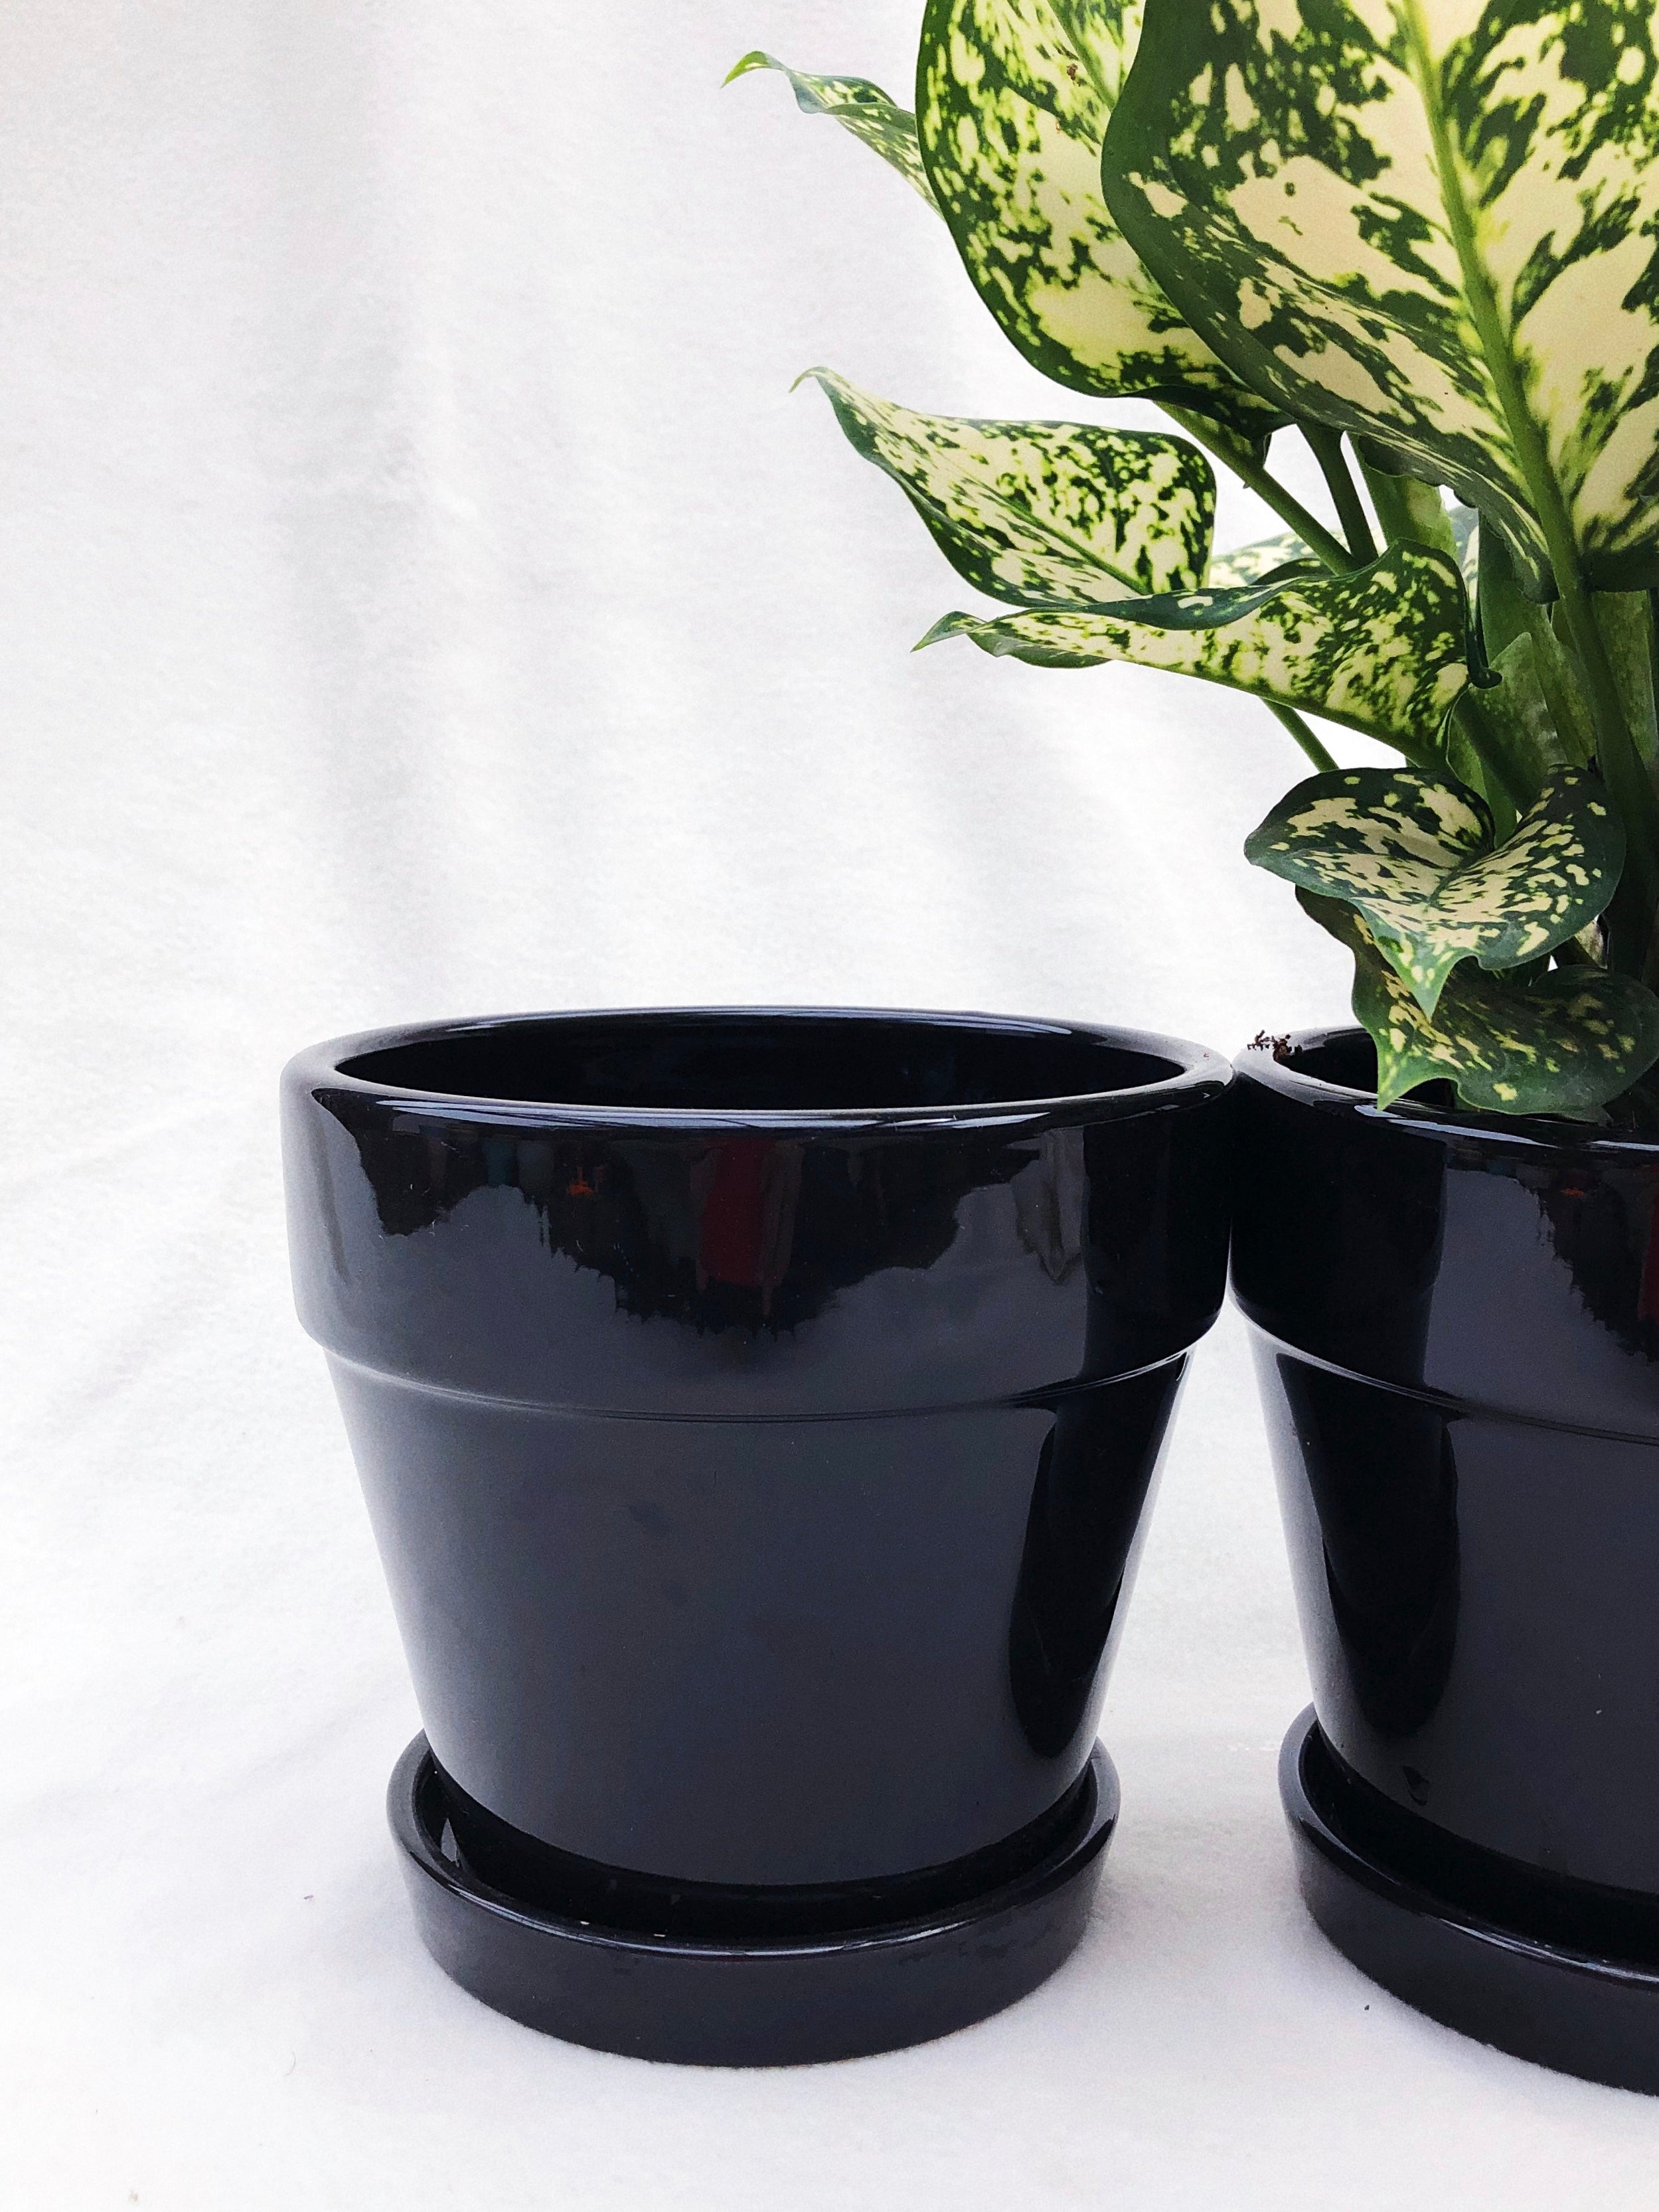 MEDIUM BLACK POT